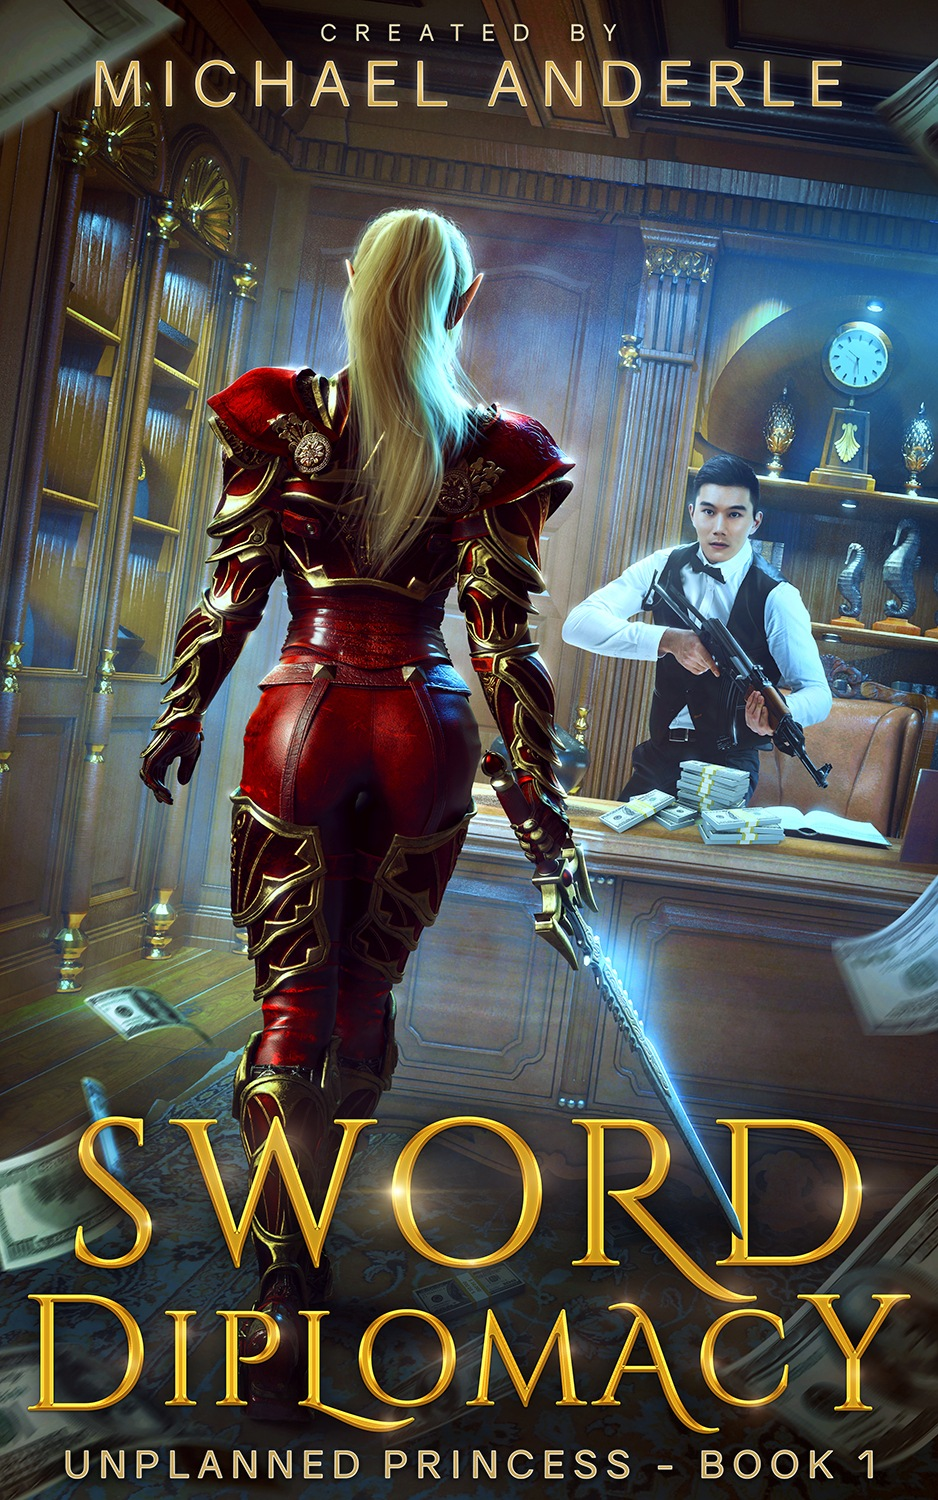 Sword Diplomacy E-book cover